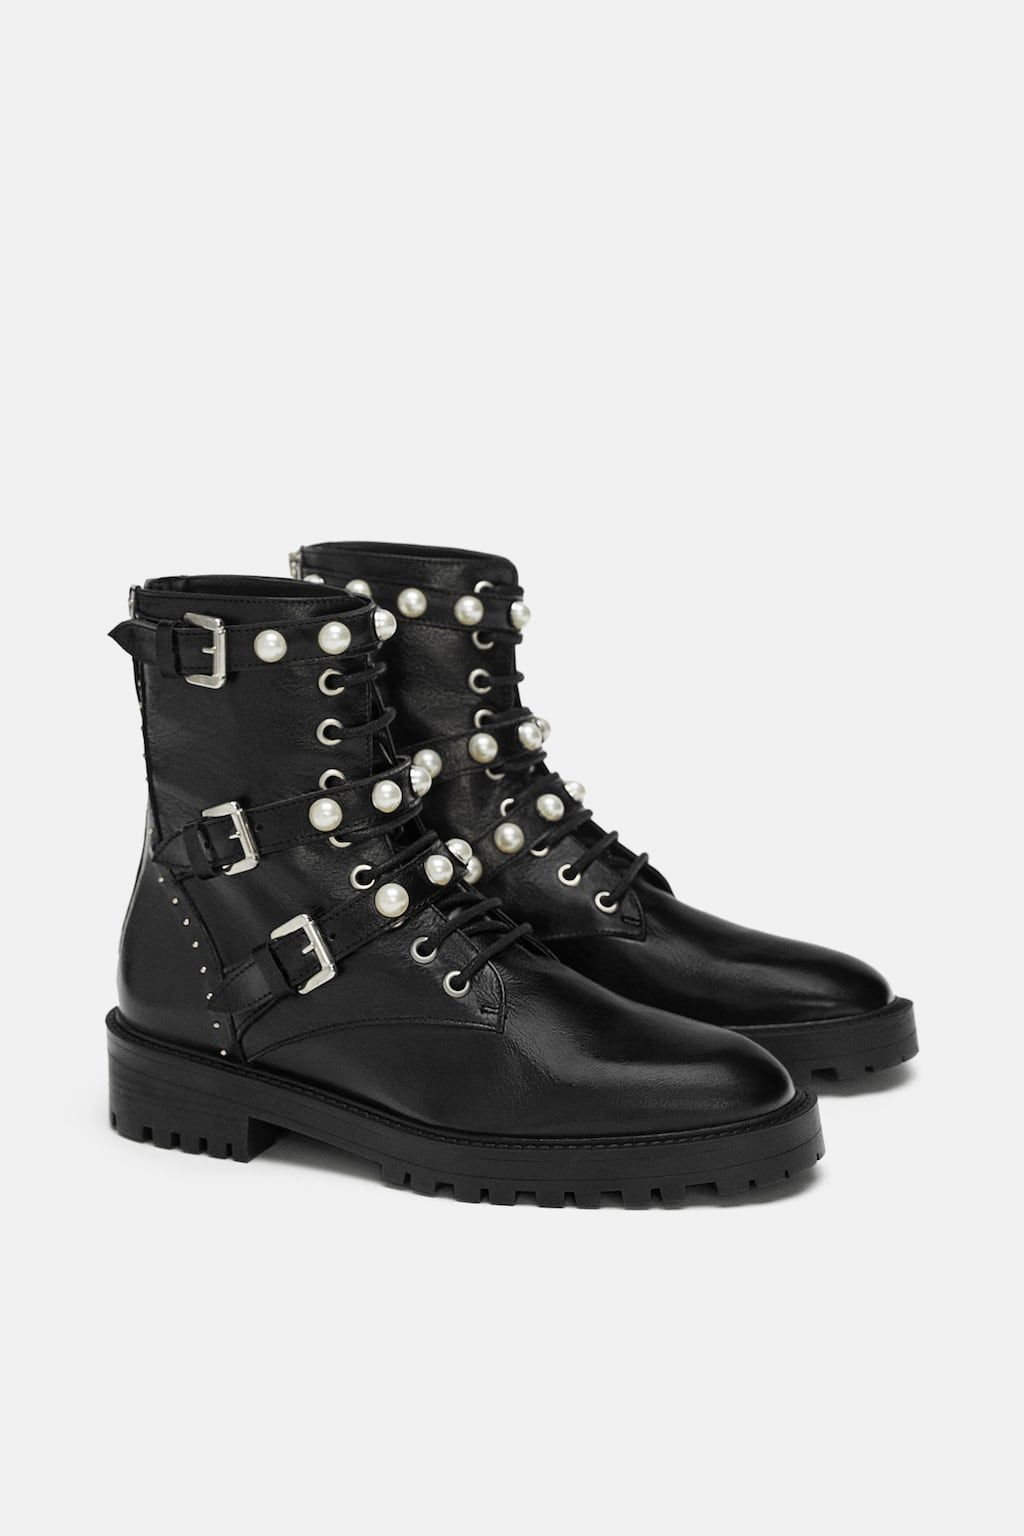 4f56d408862b Image 6 of LEATHER ANKLE BOOTS WITH FAUX PEARLS from Zara ...